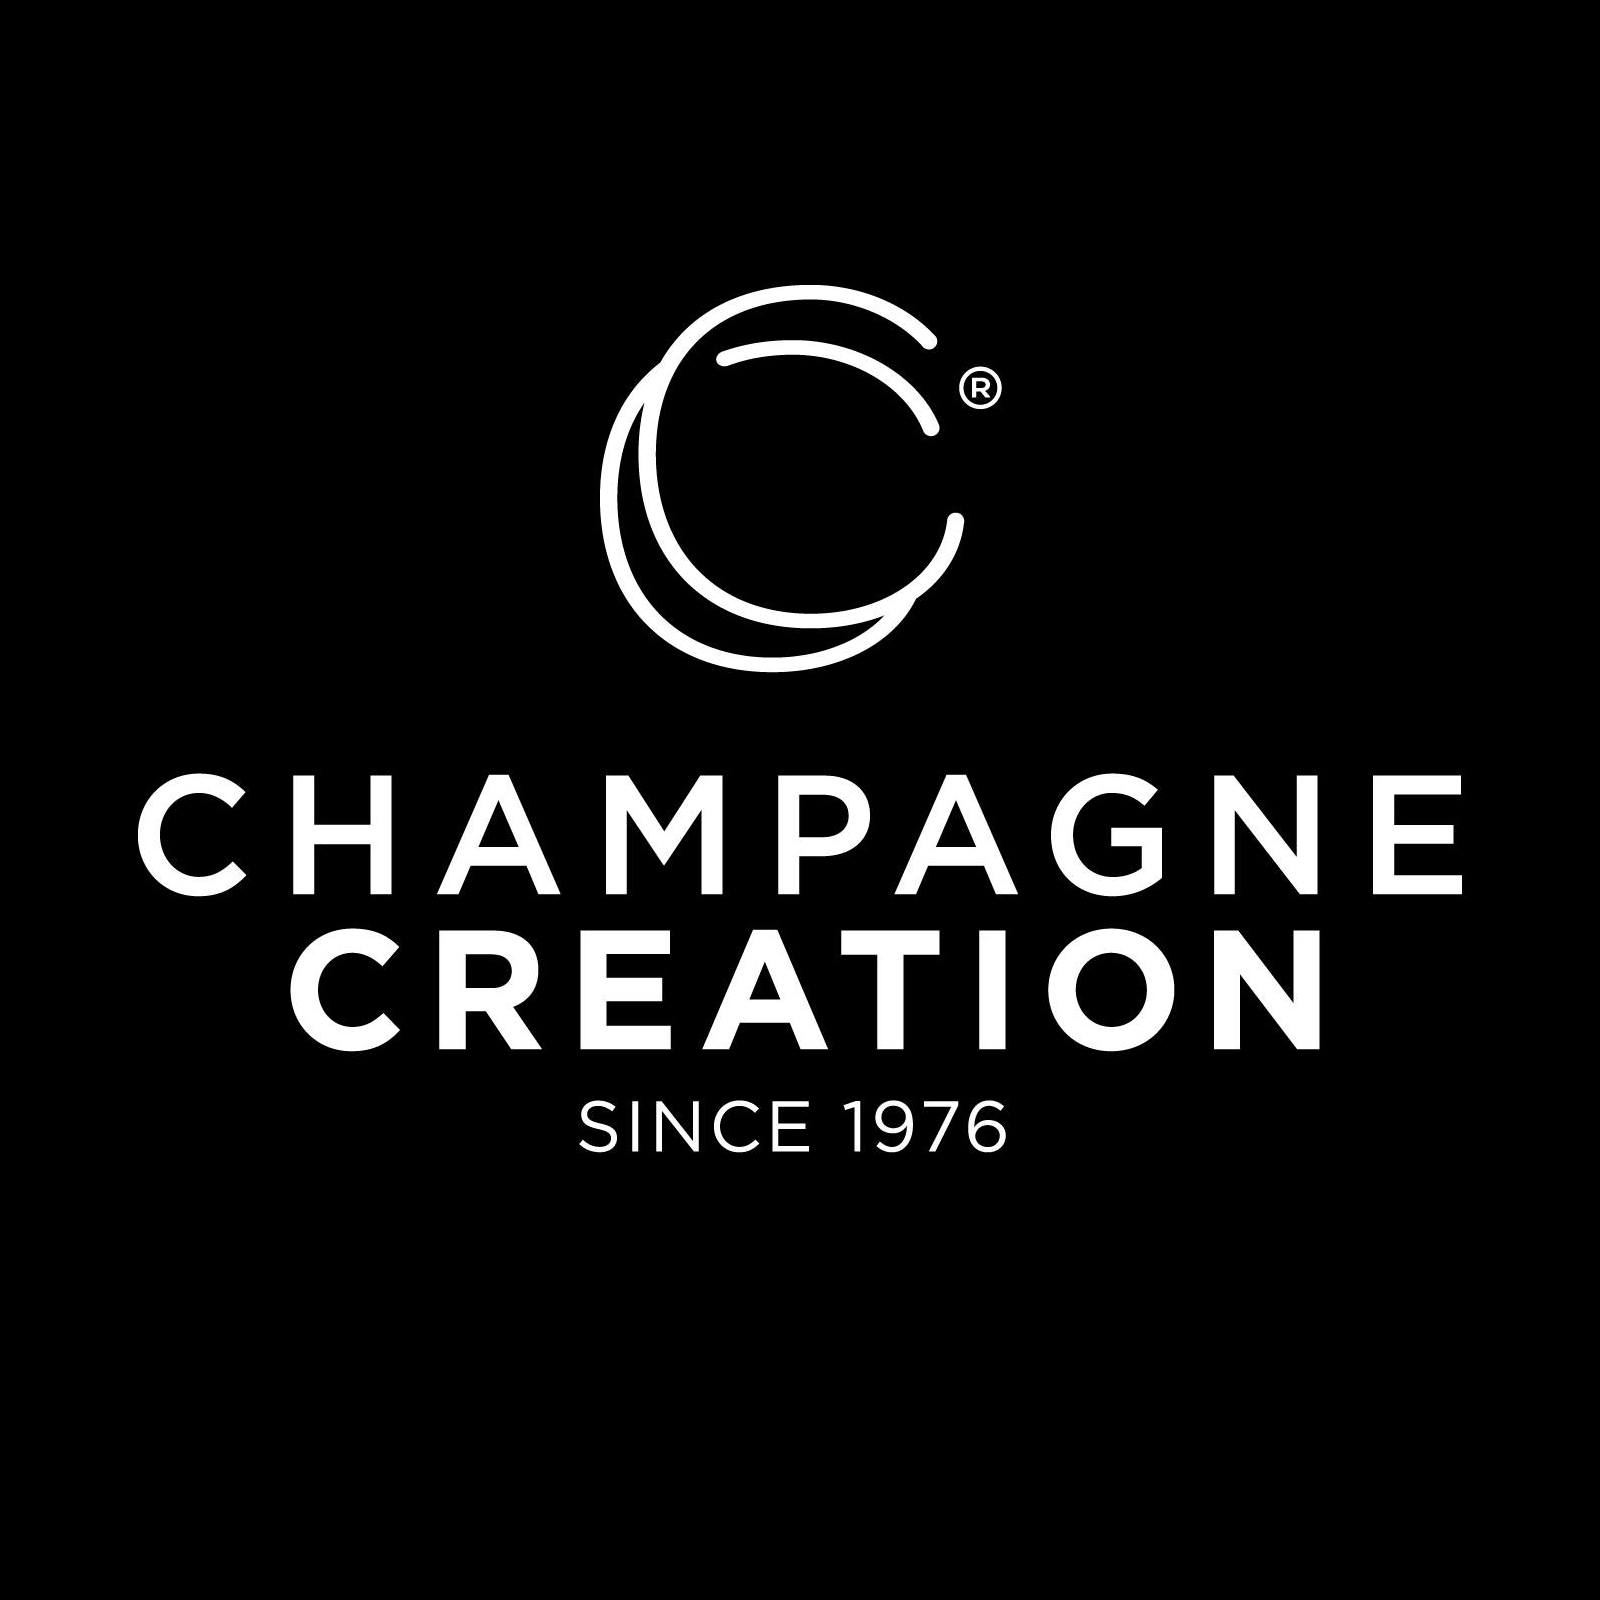 Champagne Création